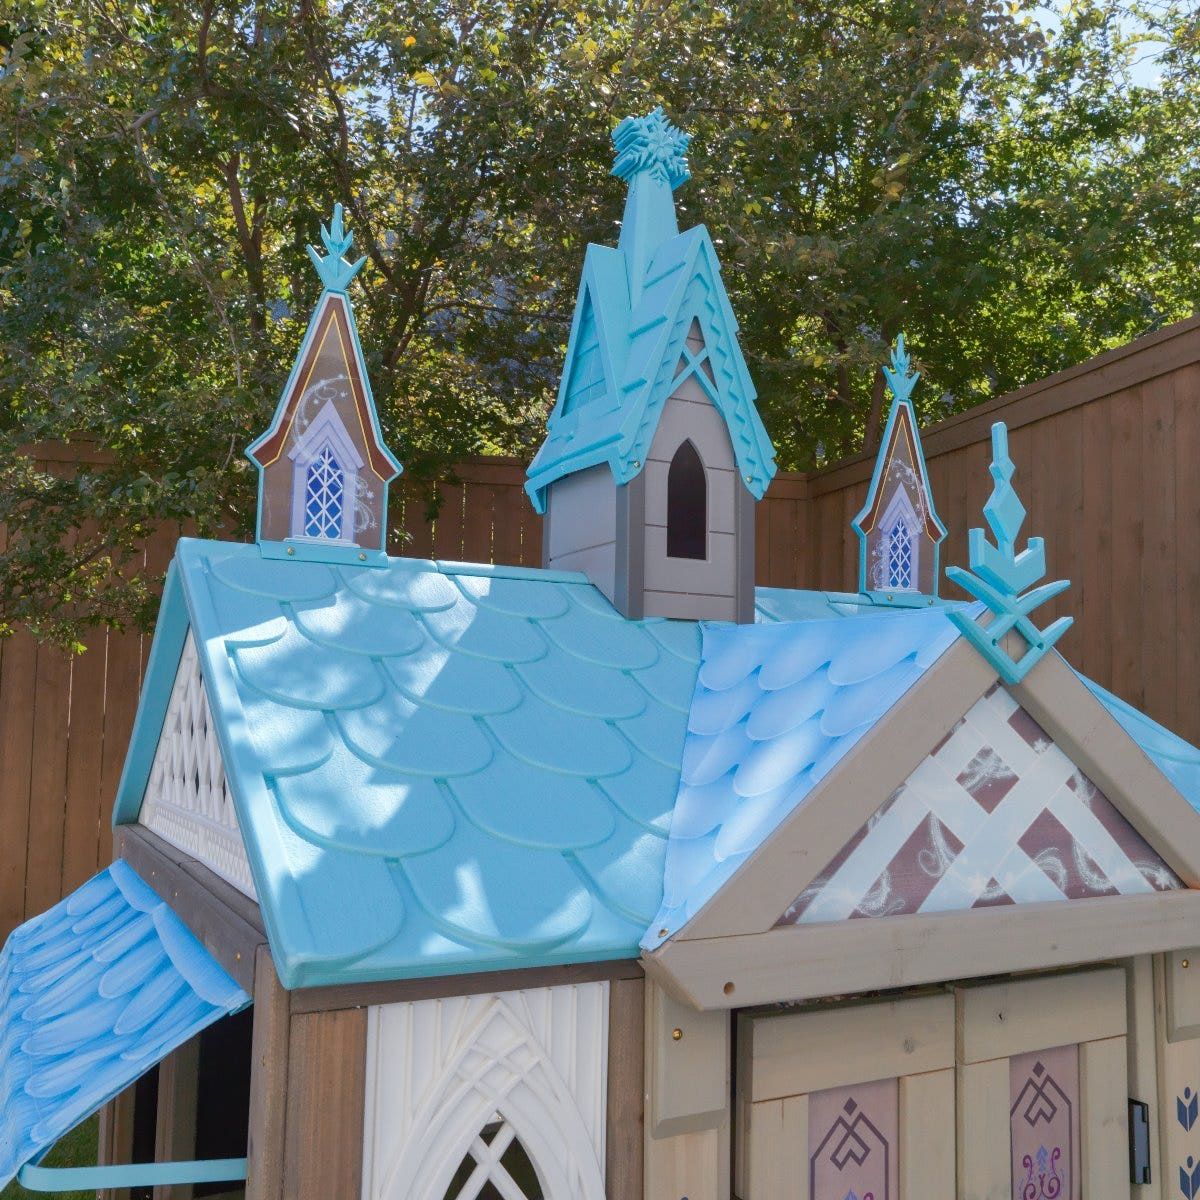 Plastic roof spires designed to reflect the aesthetic of Arendelle castle